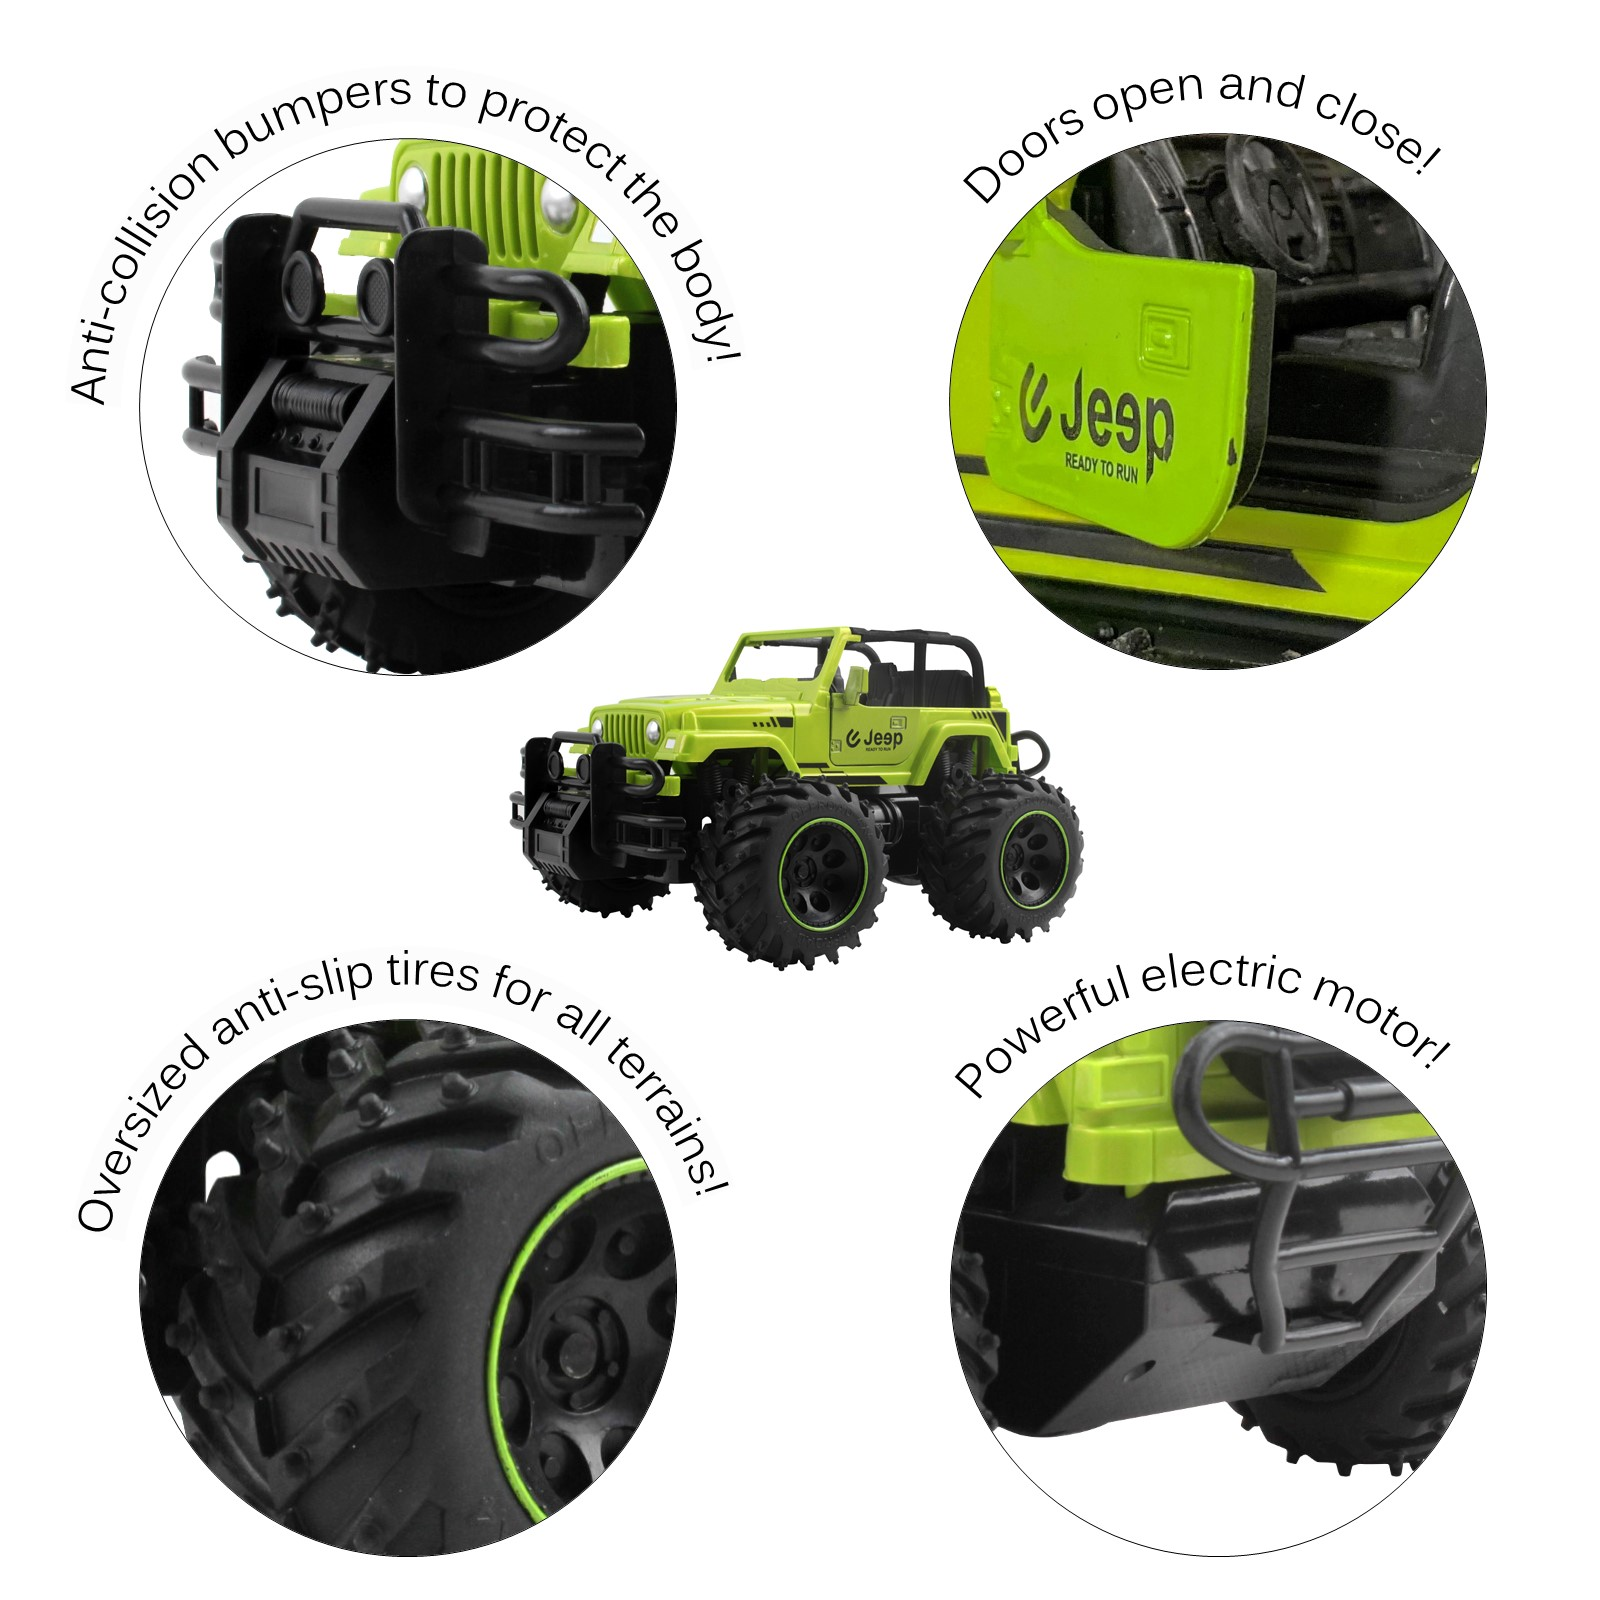 Vokodo RC Truck 10 116 Scale Size Jeep With Big Off-Road Tires And Opening Doors SUV Remote Control Indoor Outdoor Car Ready To Run Electric RTR Kids Toy Vehicle Great Gift For Children Boys Girls